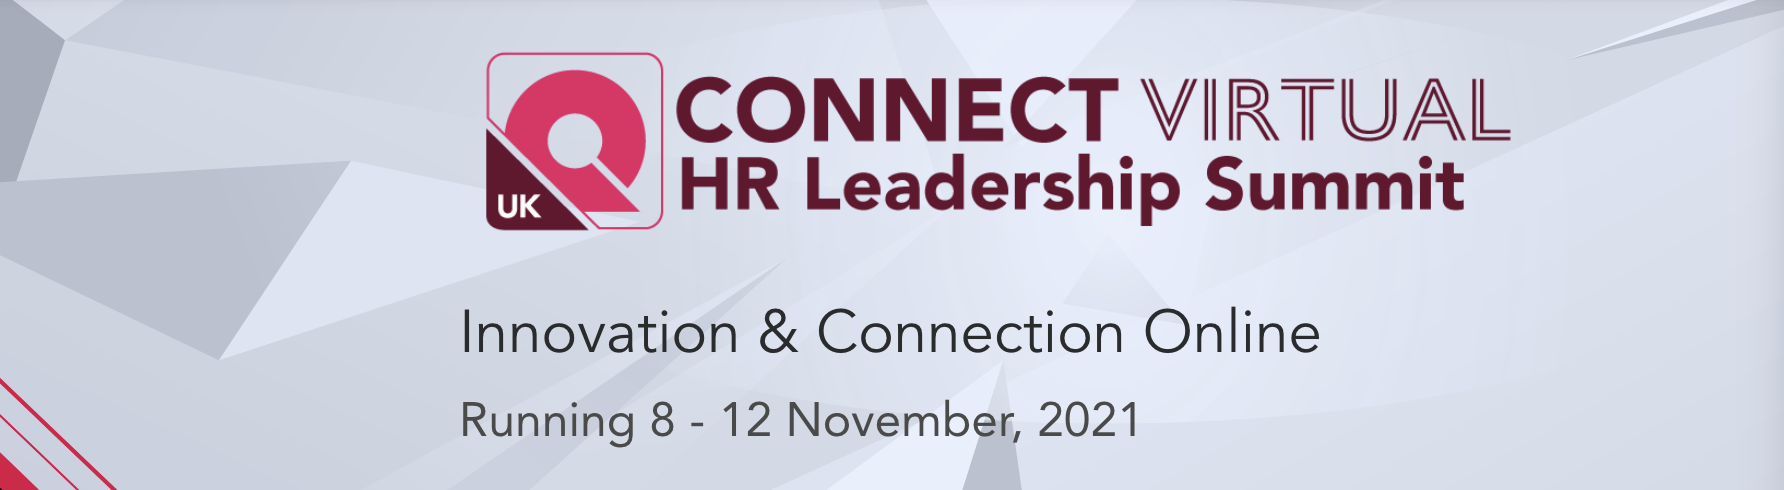 connect HR event 2021